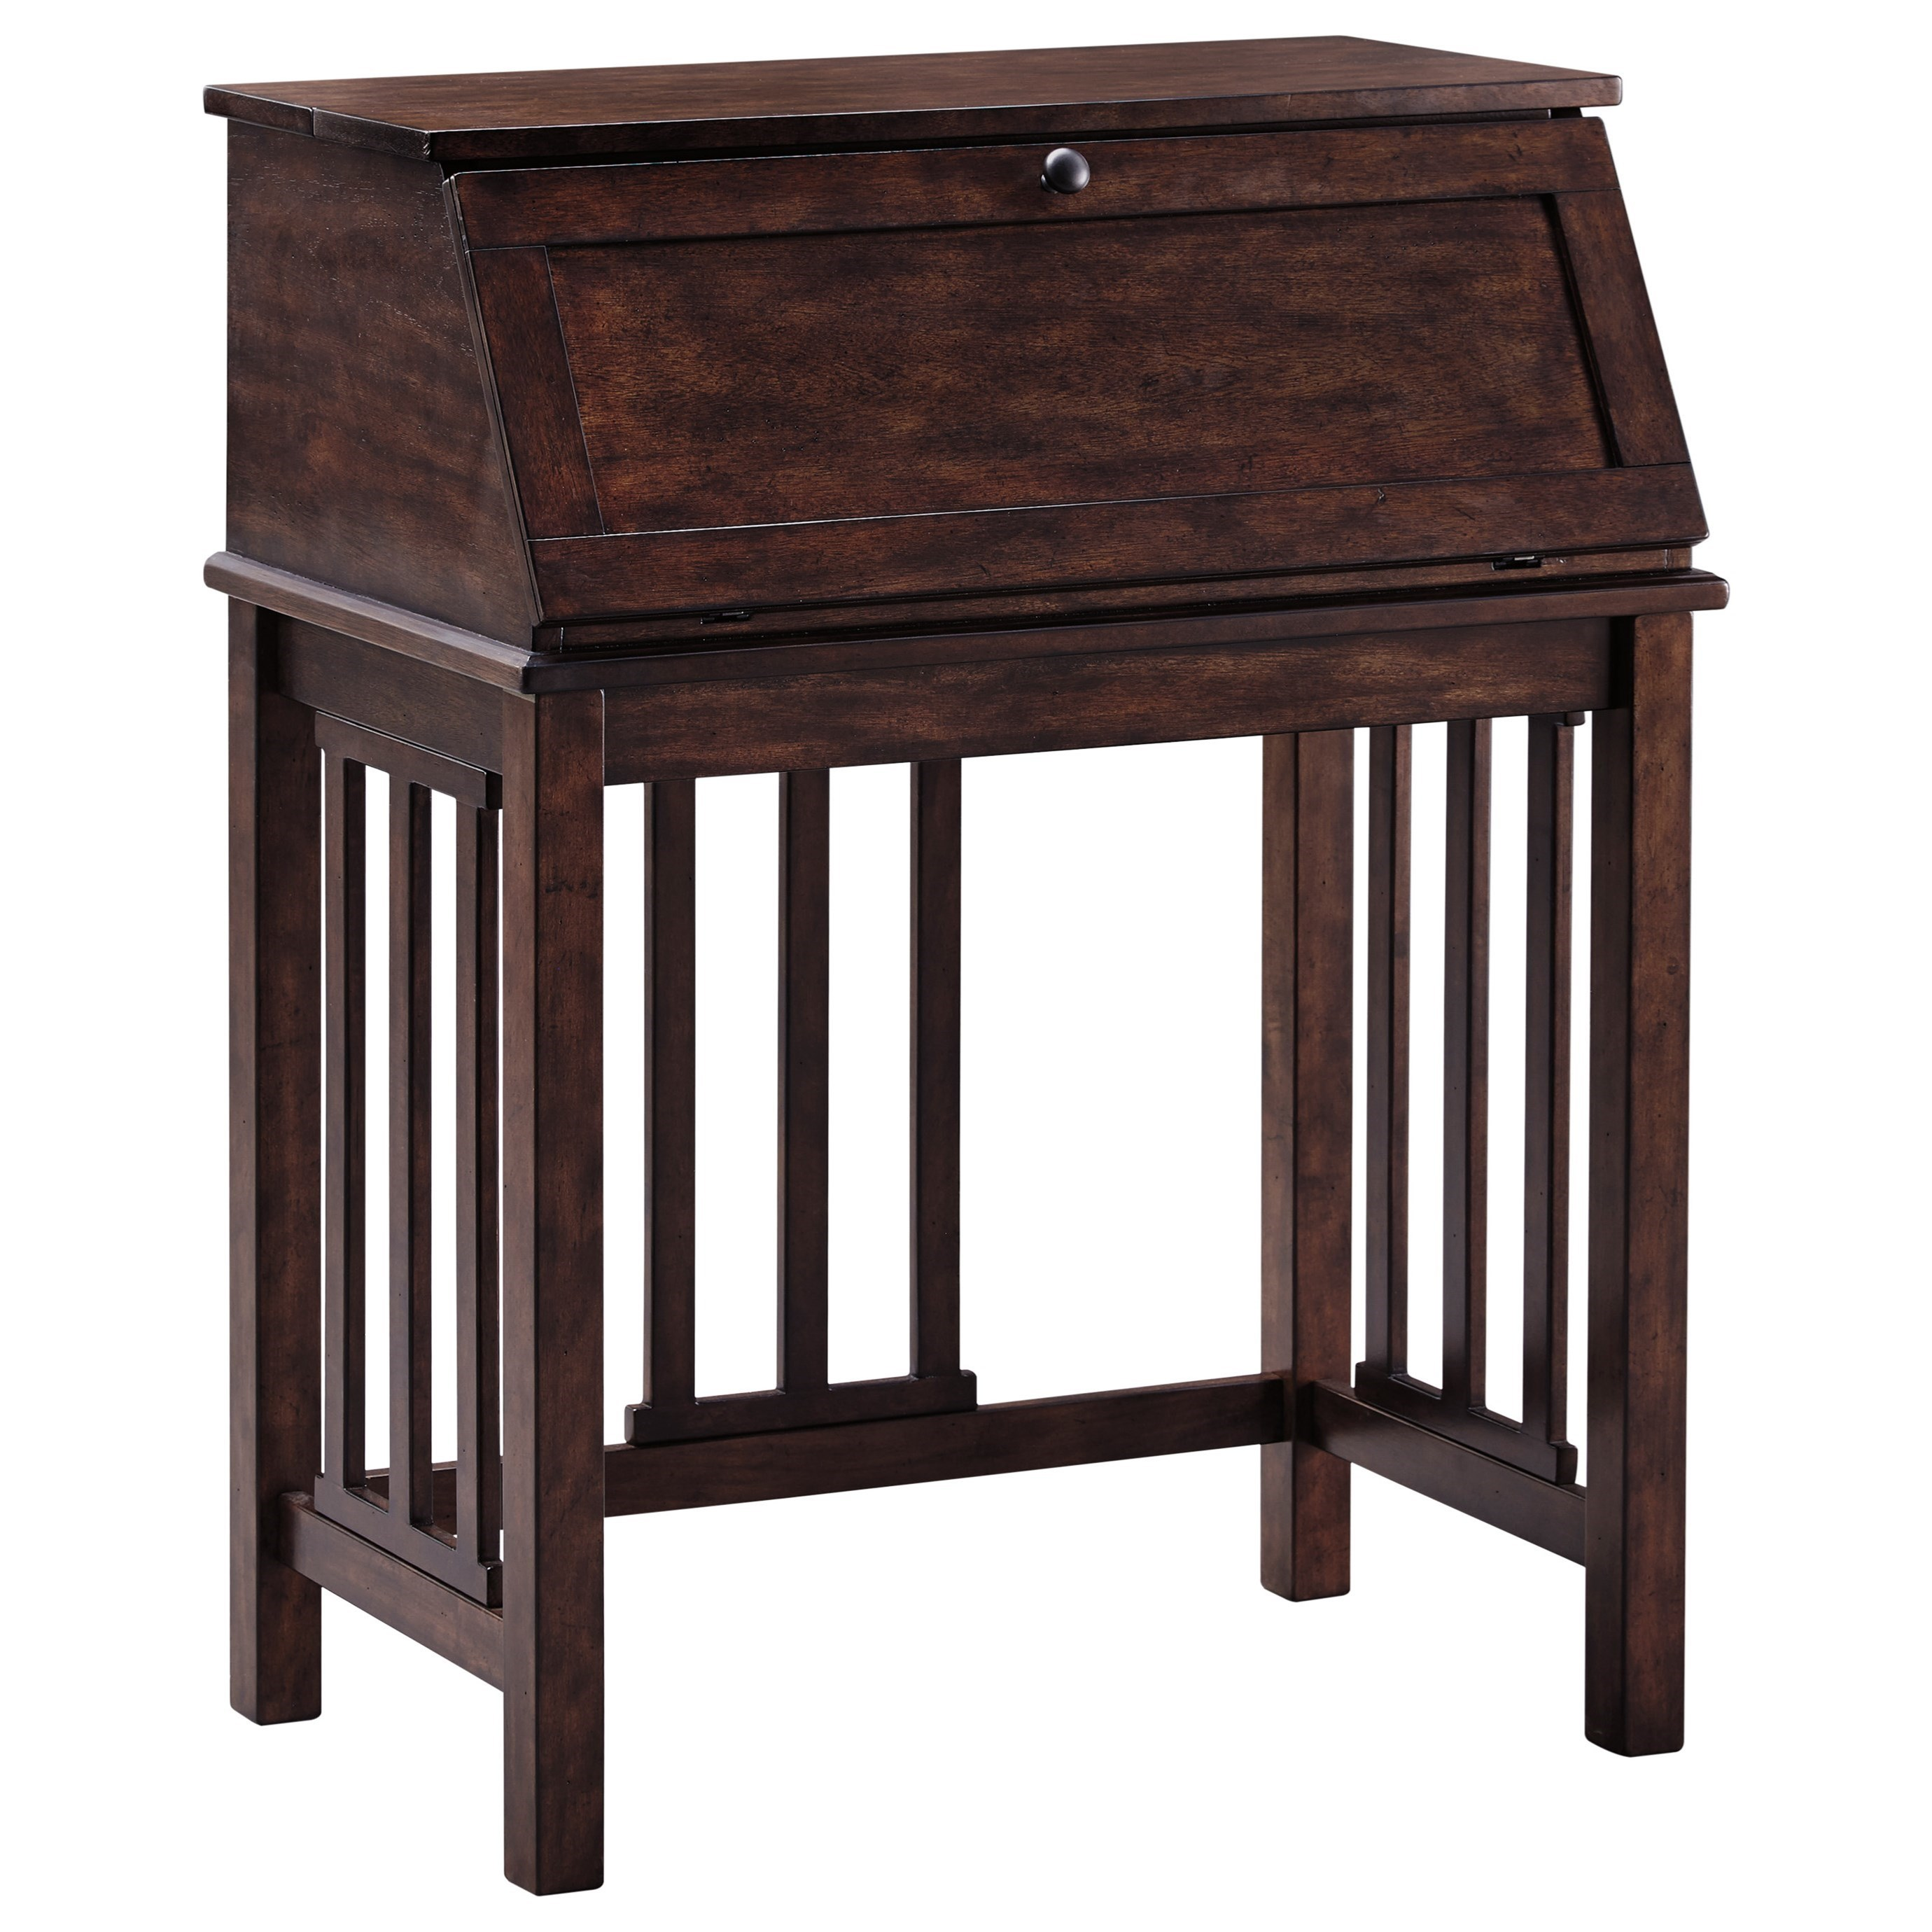 Signature Design by Ashley Harpan Home Office Drop Front Desk - Item Number: H797-19